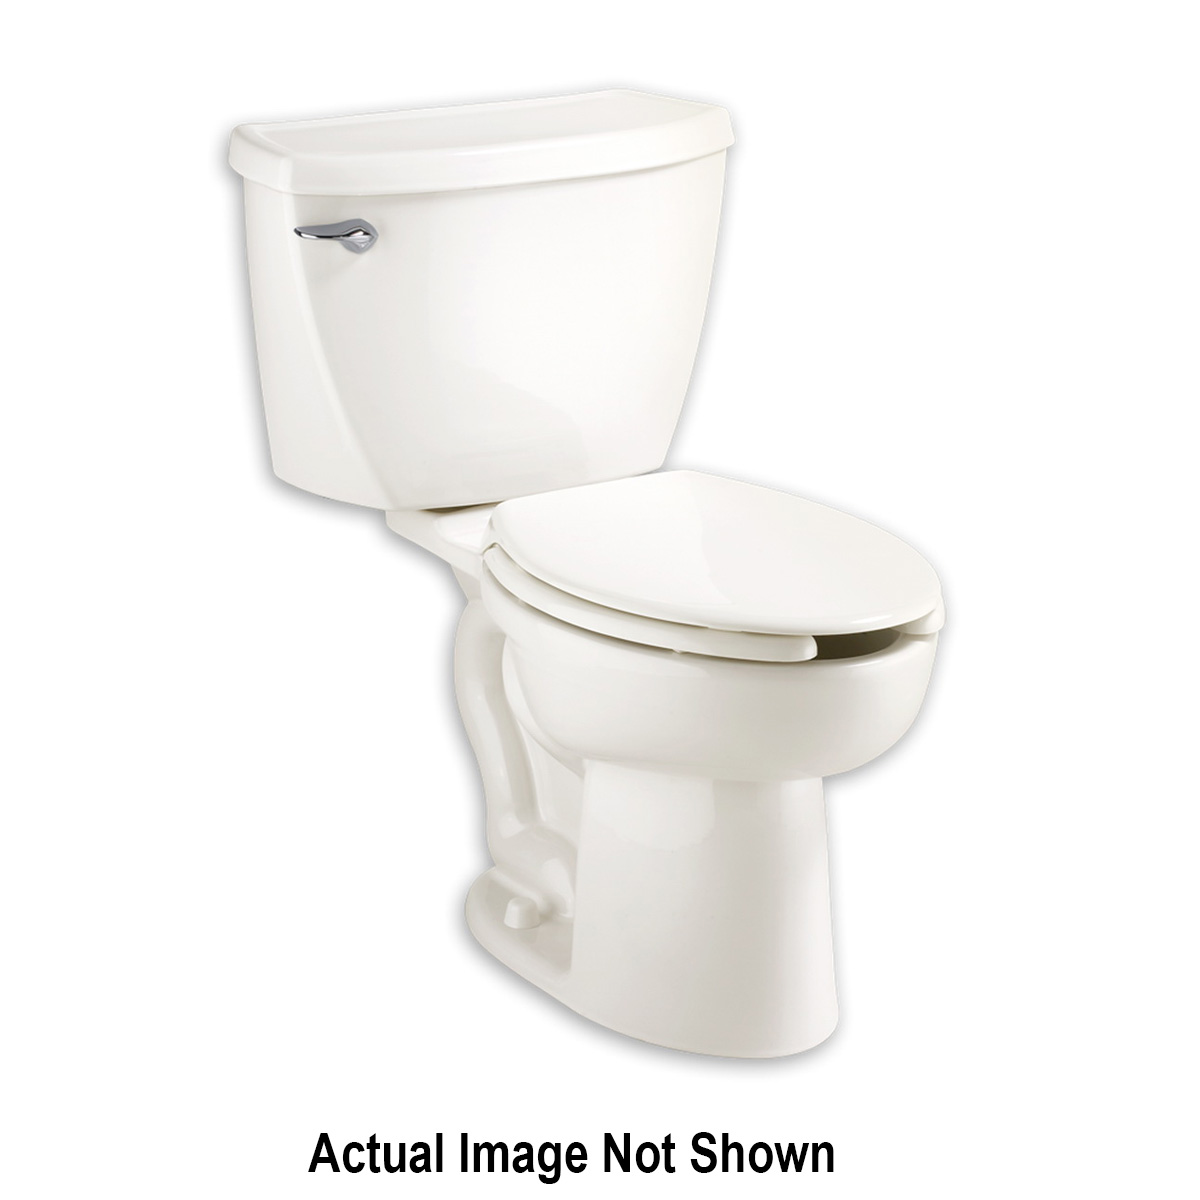 American Standard 3483.001.020 Cadet® FloWise® Right Height™ Toilet Bowl, Elongated, 10 x 12 in Water Surface, 16-1/2 in H Rim, 2-1/8 in Trapway, Import